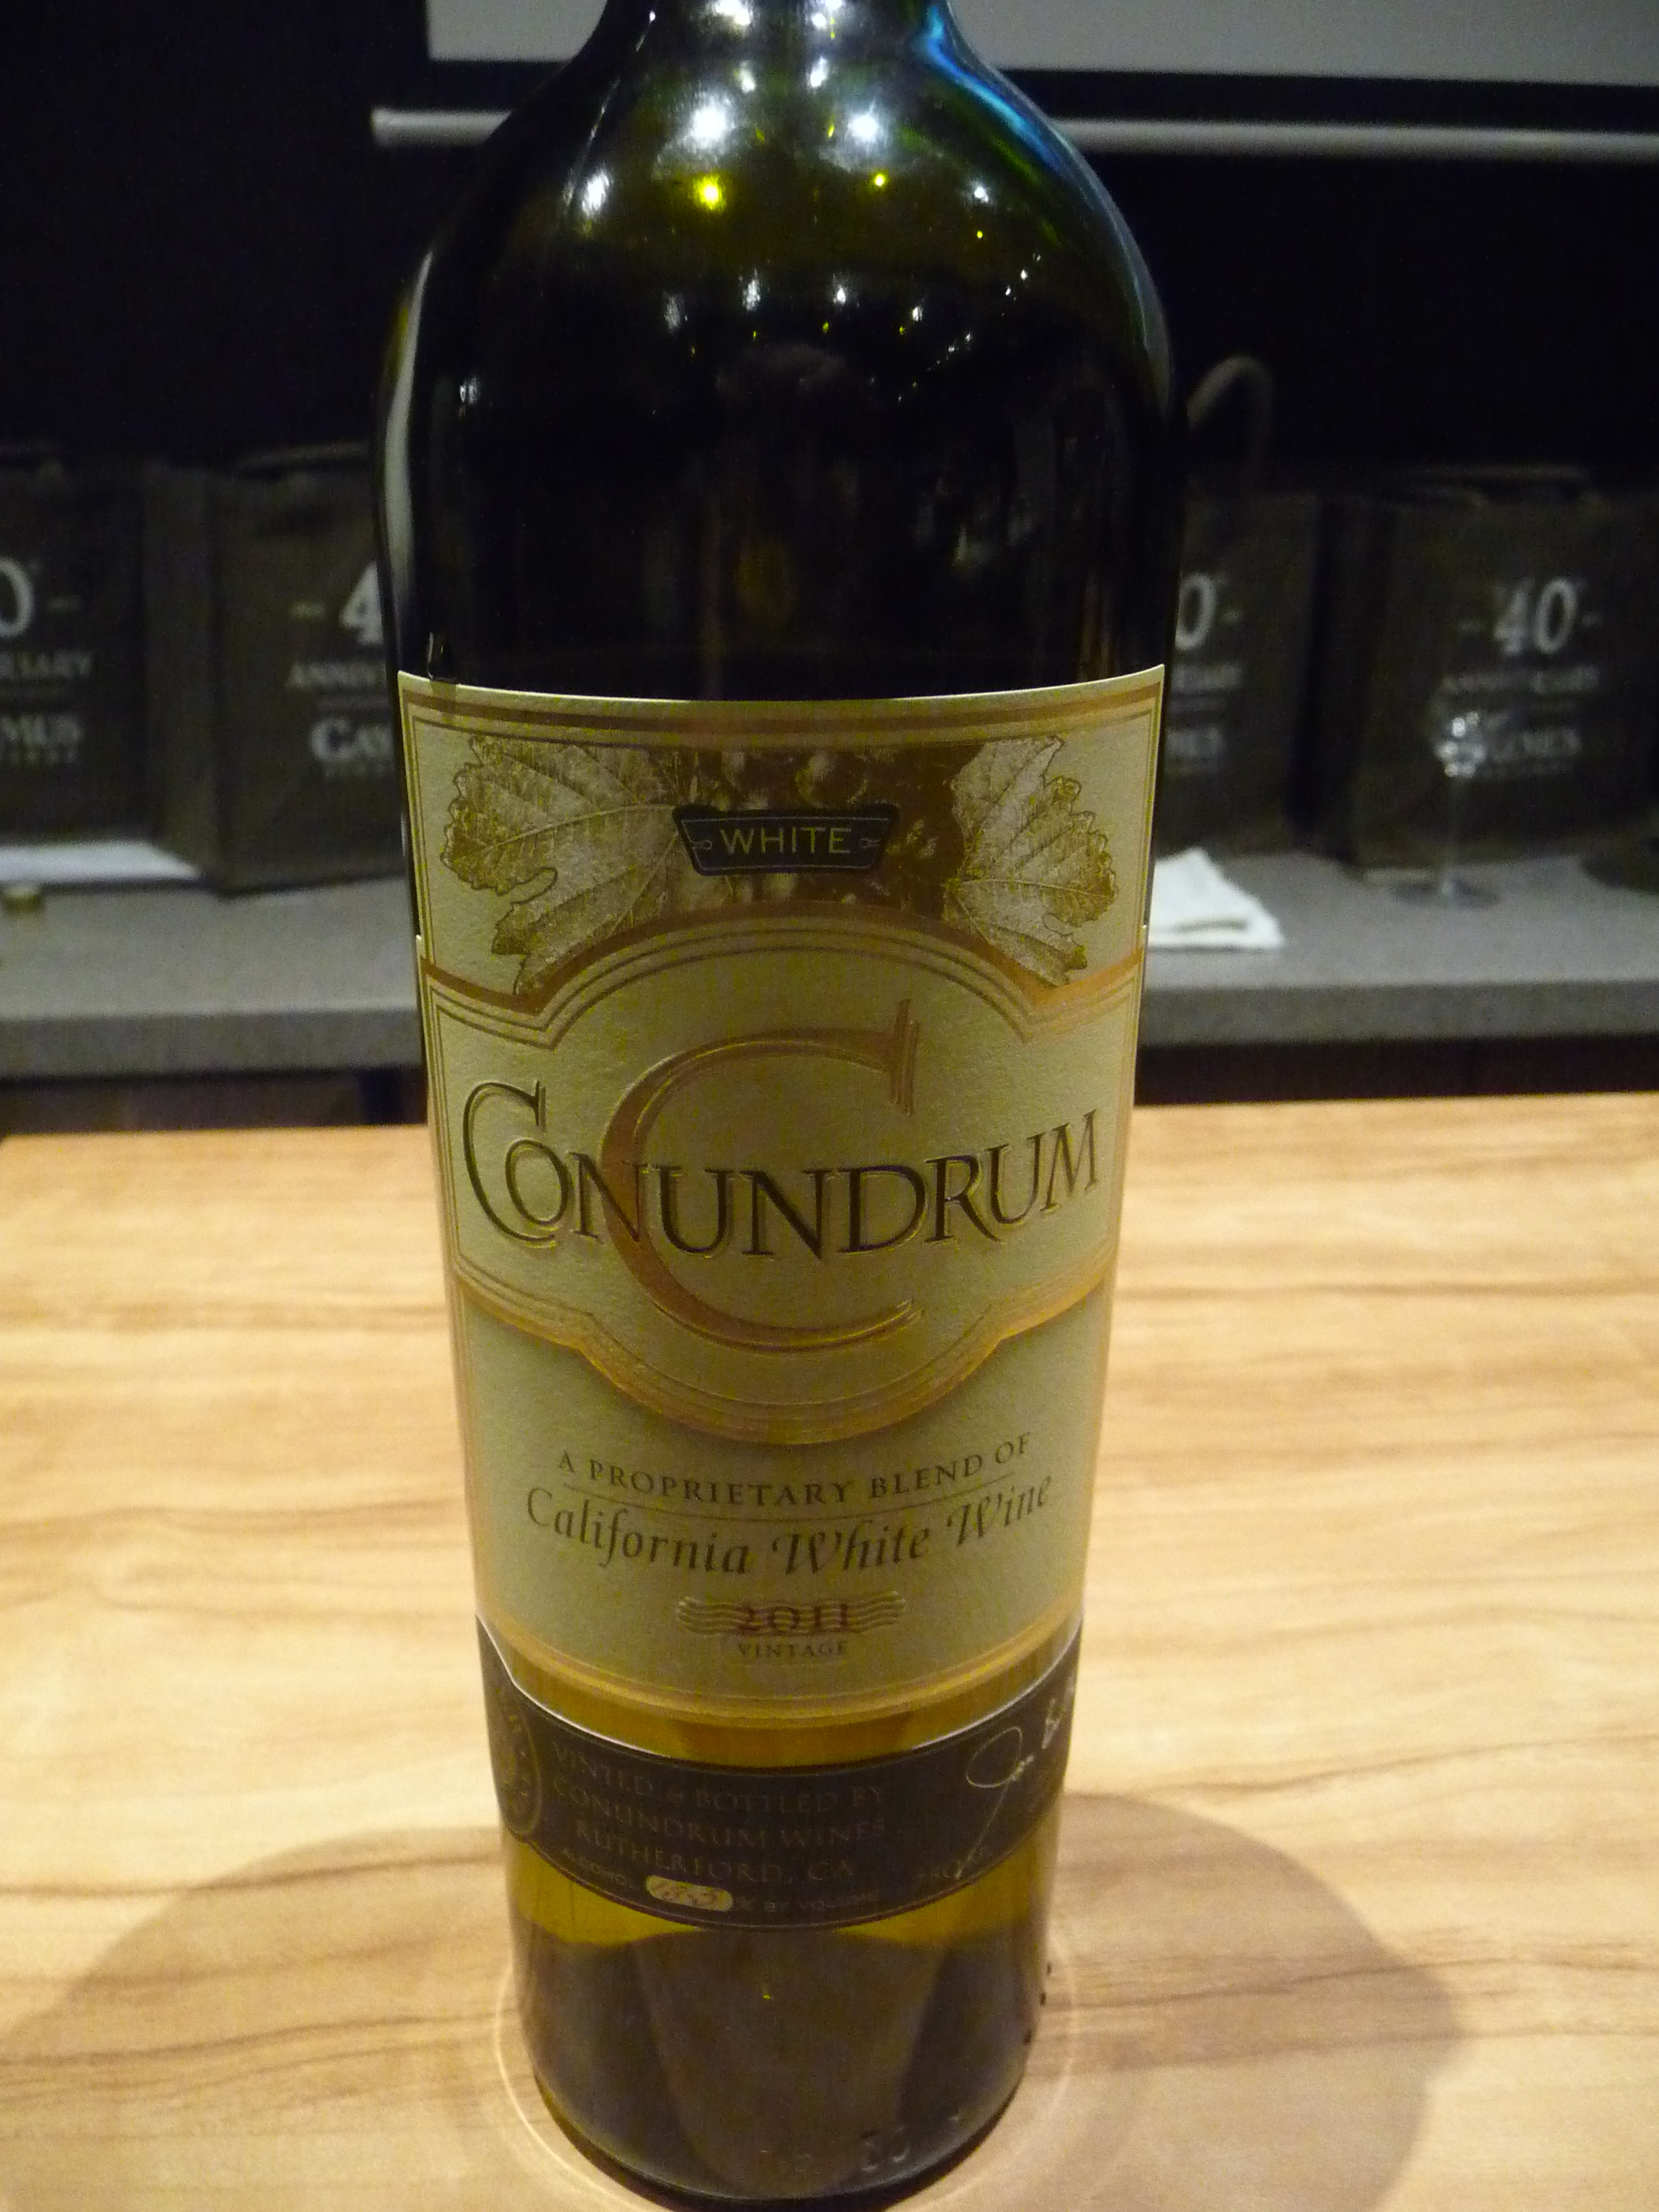 The 2011 Conundrum California White Wine-a blend of five wines